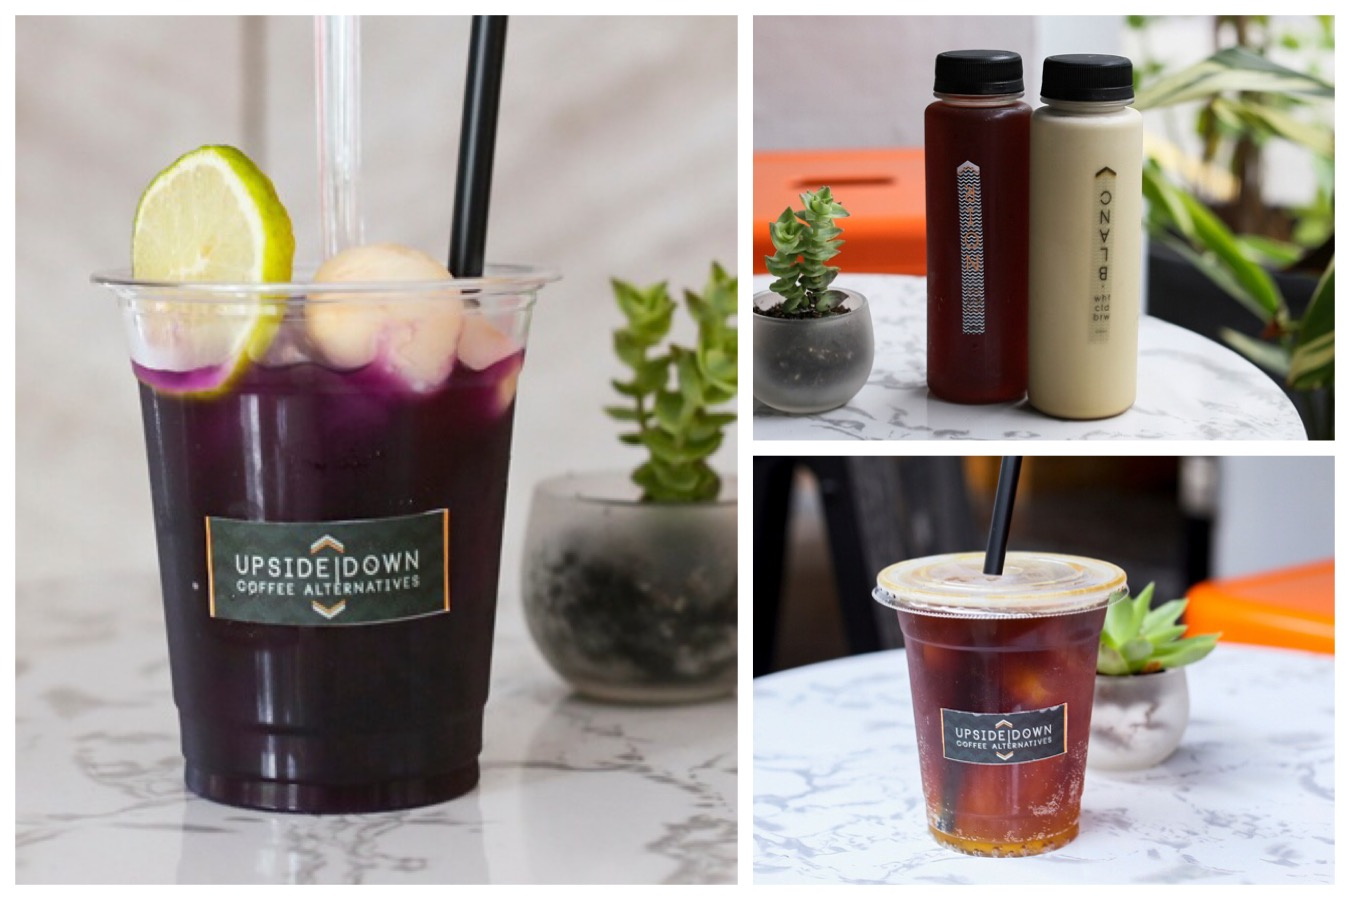 Upside Down Coffee Alternatives - Ultra Violet Lychee, Cold Drip & Tonic At Amoy Street